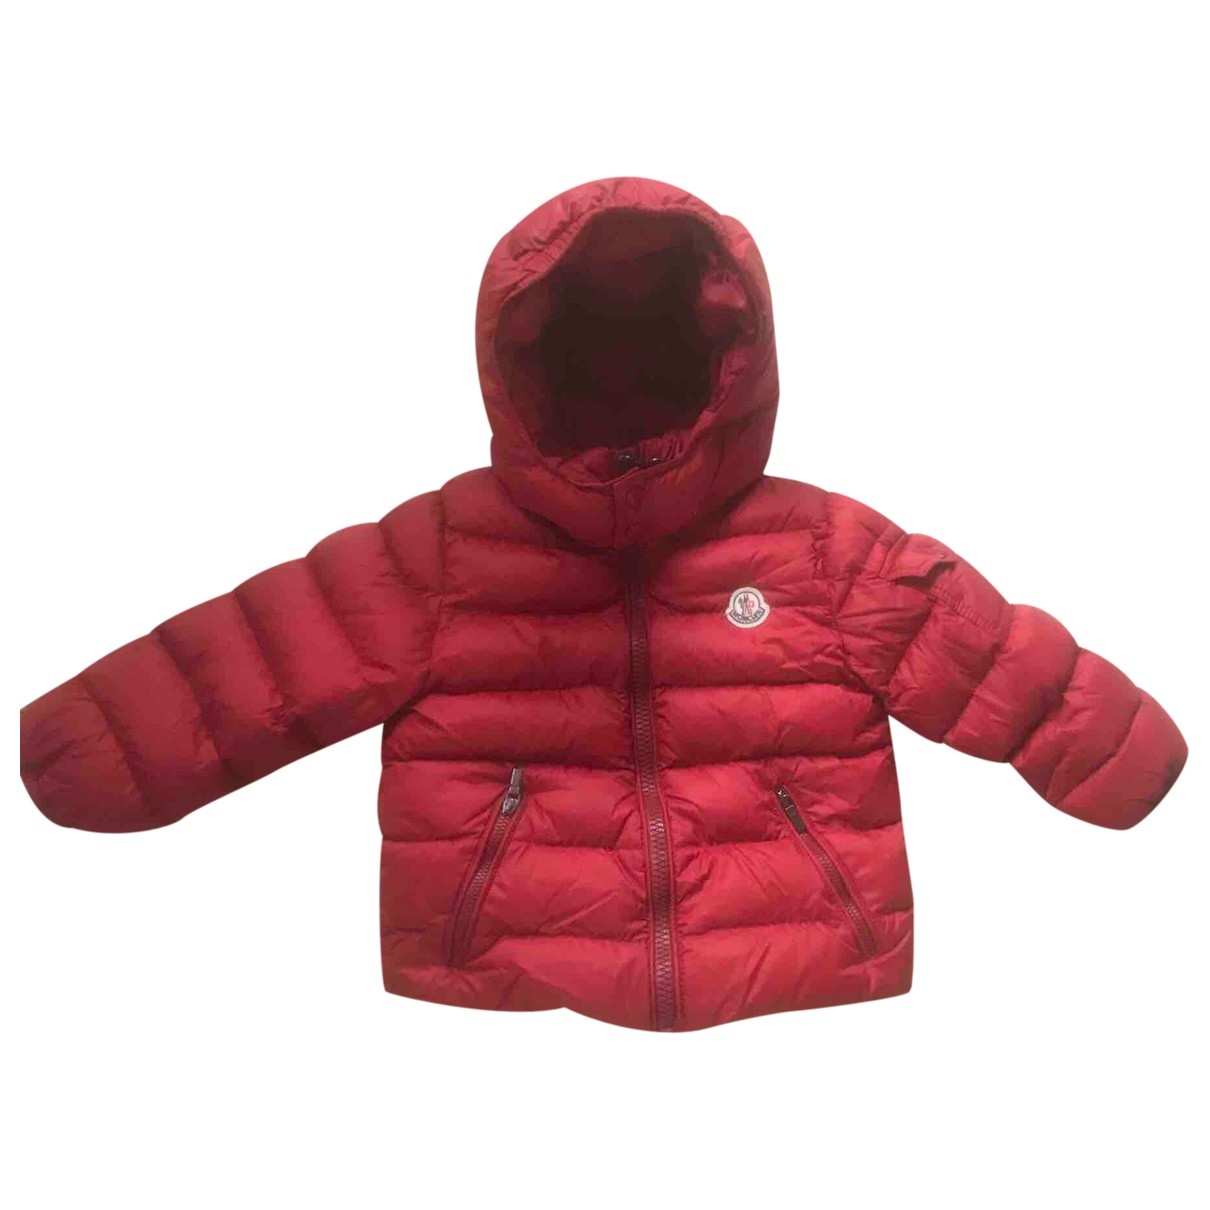 Moncler \N Red jacket & coat for Kids 2 years - up to 86cm FR